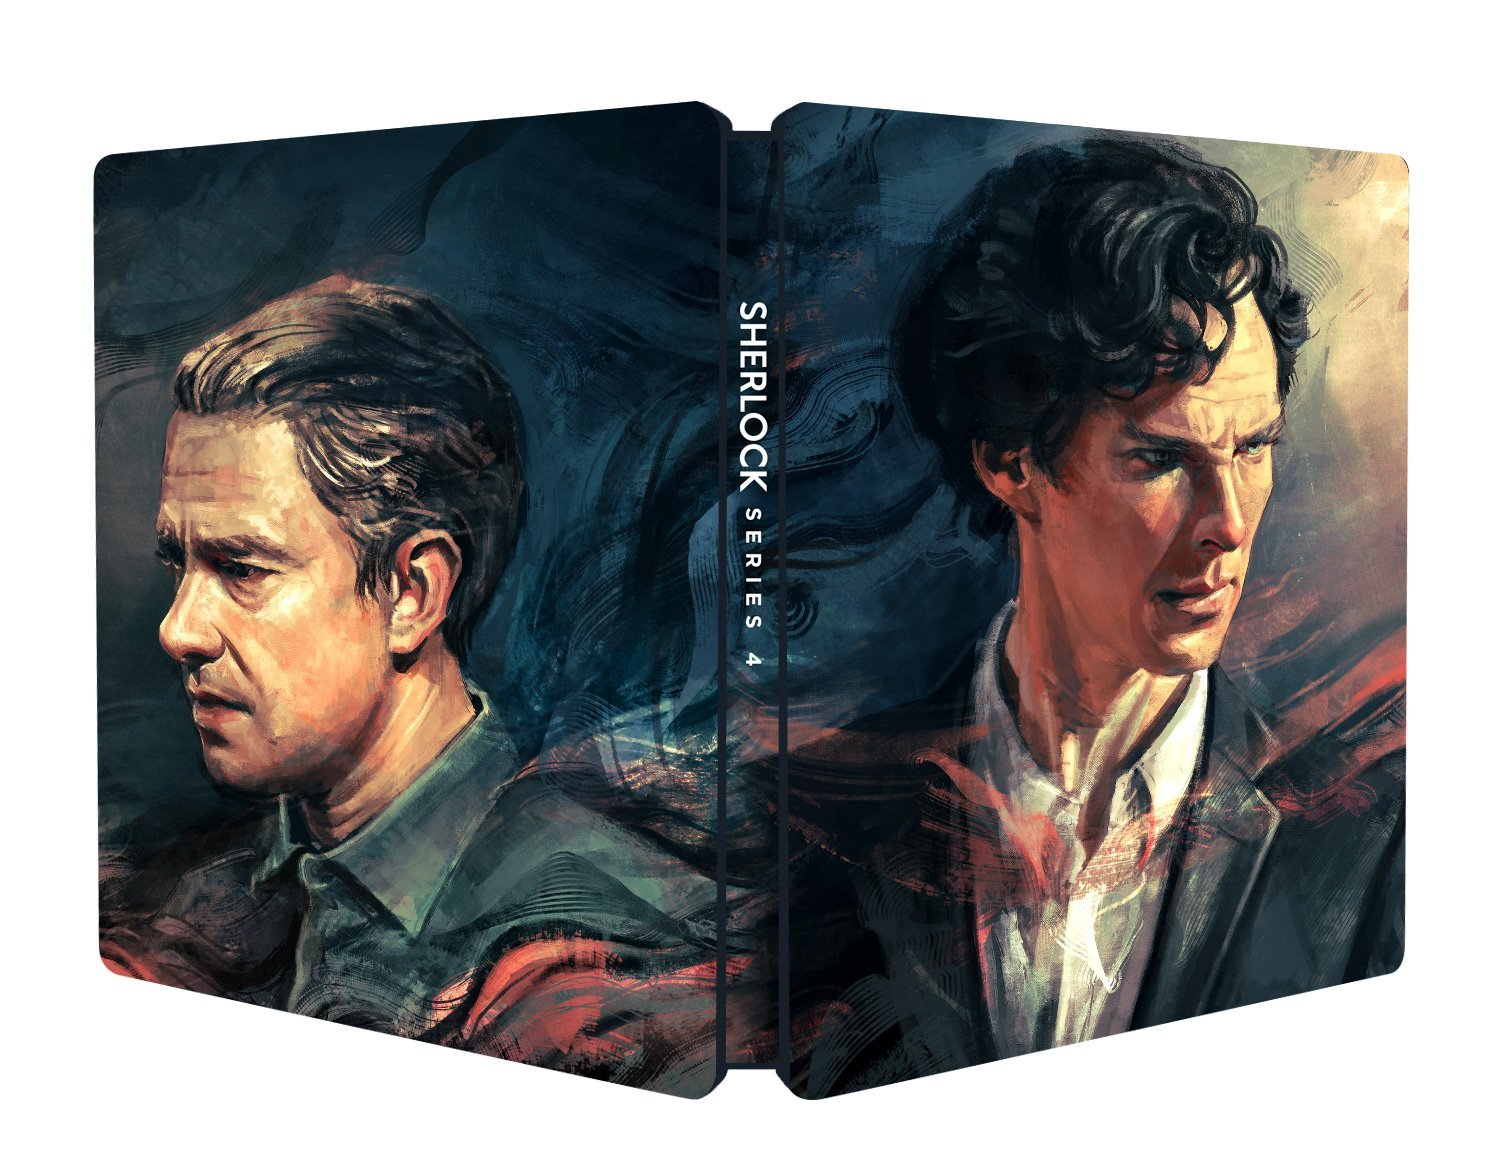 sherlock-saison-4-steelbook-uk-2